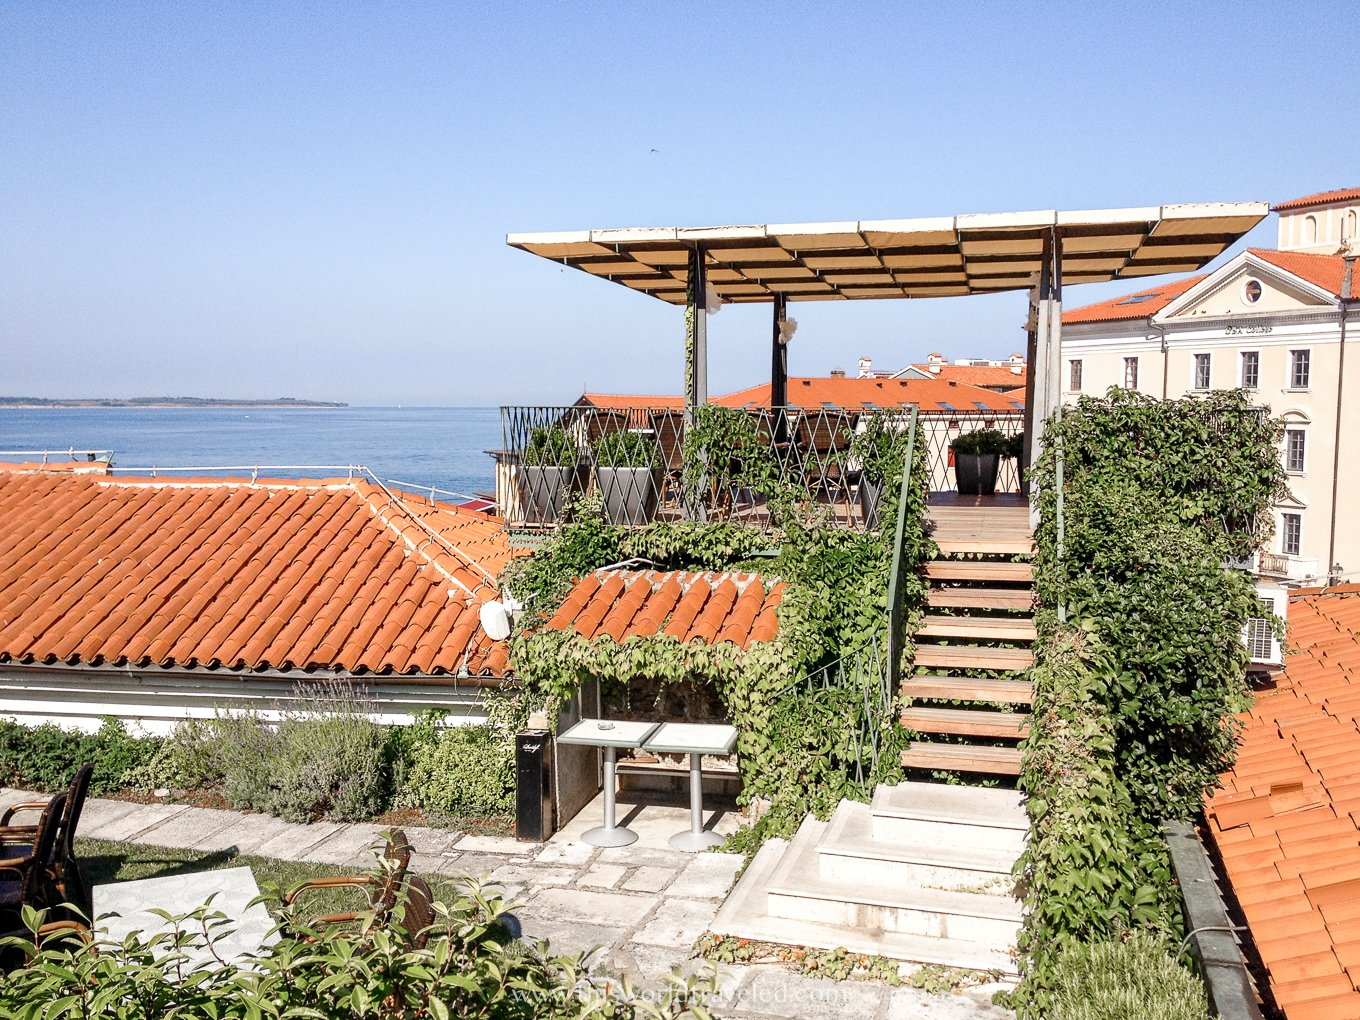 A large rooftop garden with plants and a red roof on top of Art Hotel Tartini in Piran